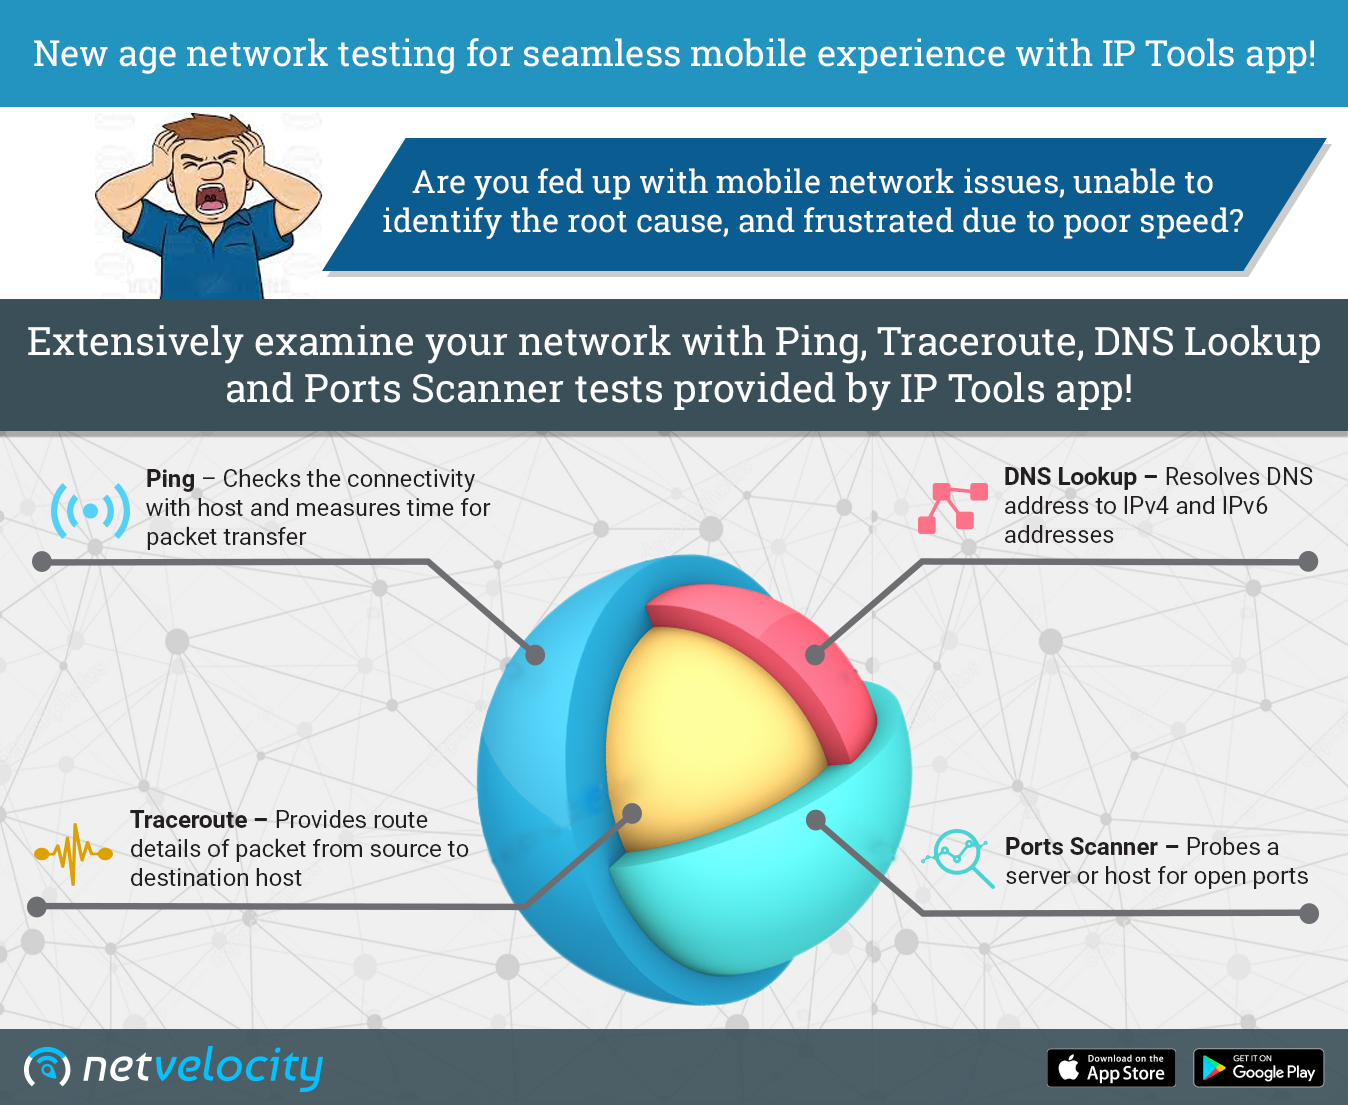 IP Tools - Network Testing app